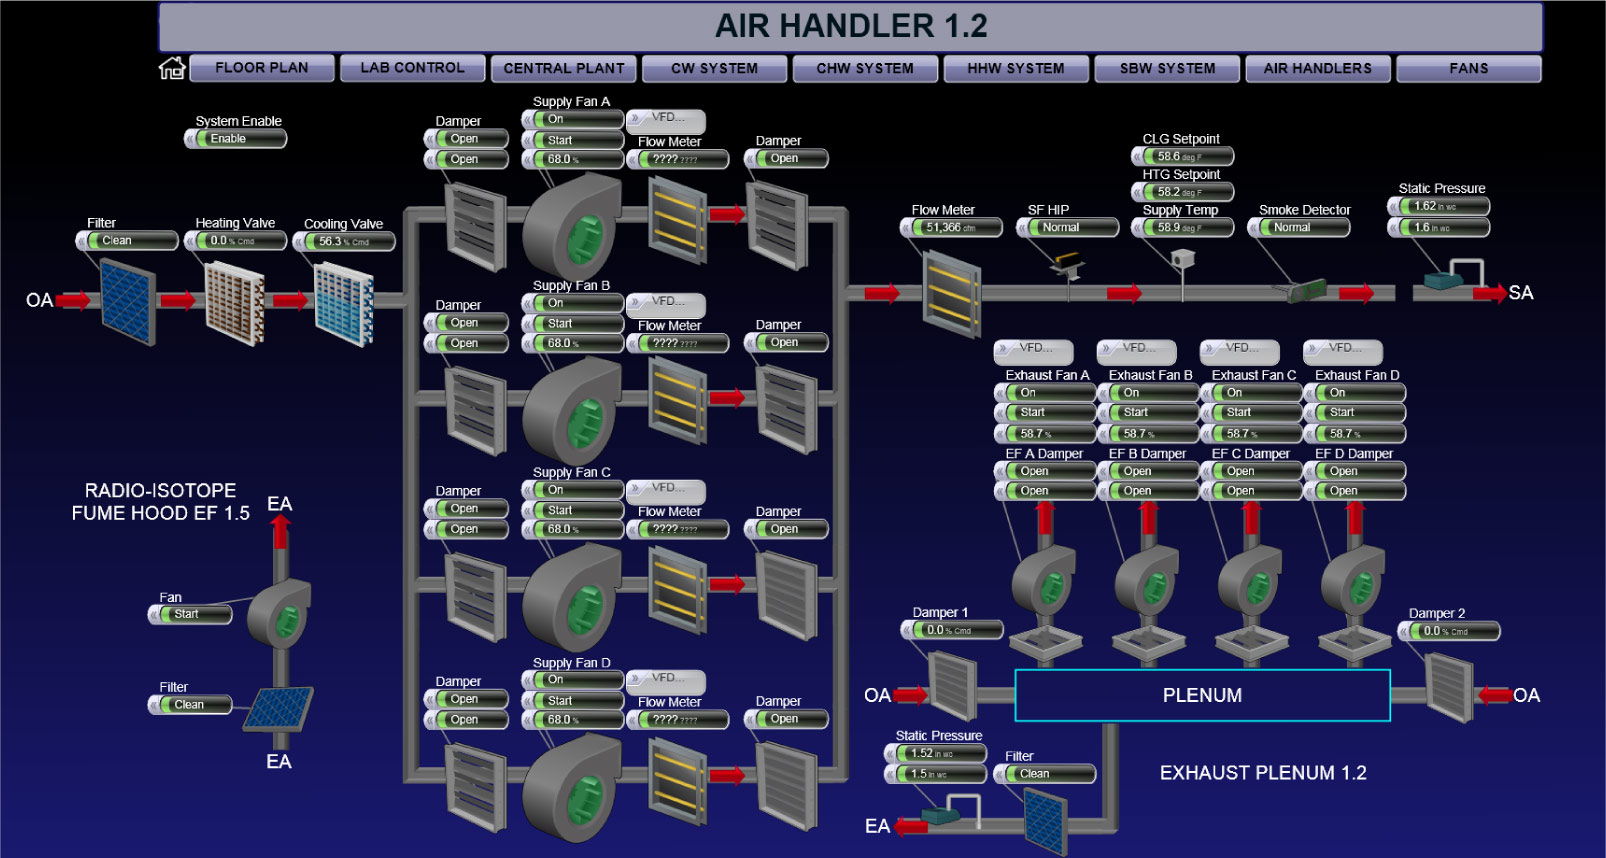 Example of a Building Automation System, a Air Handler System